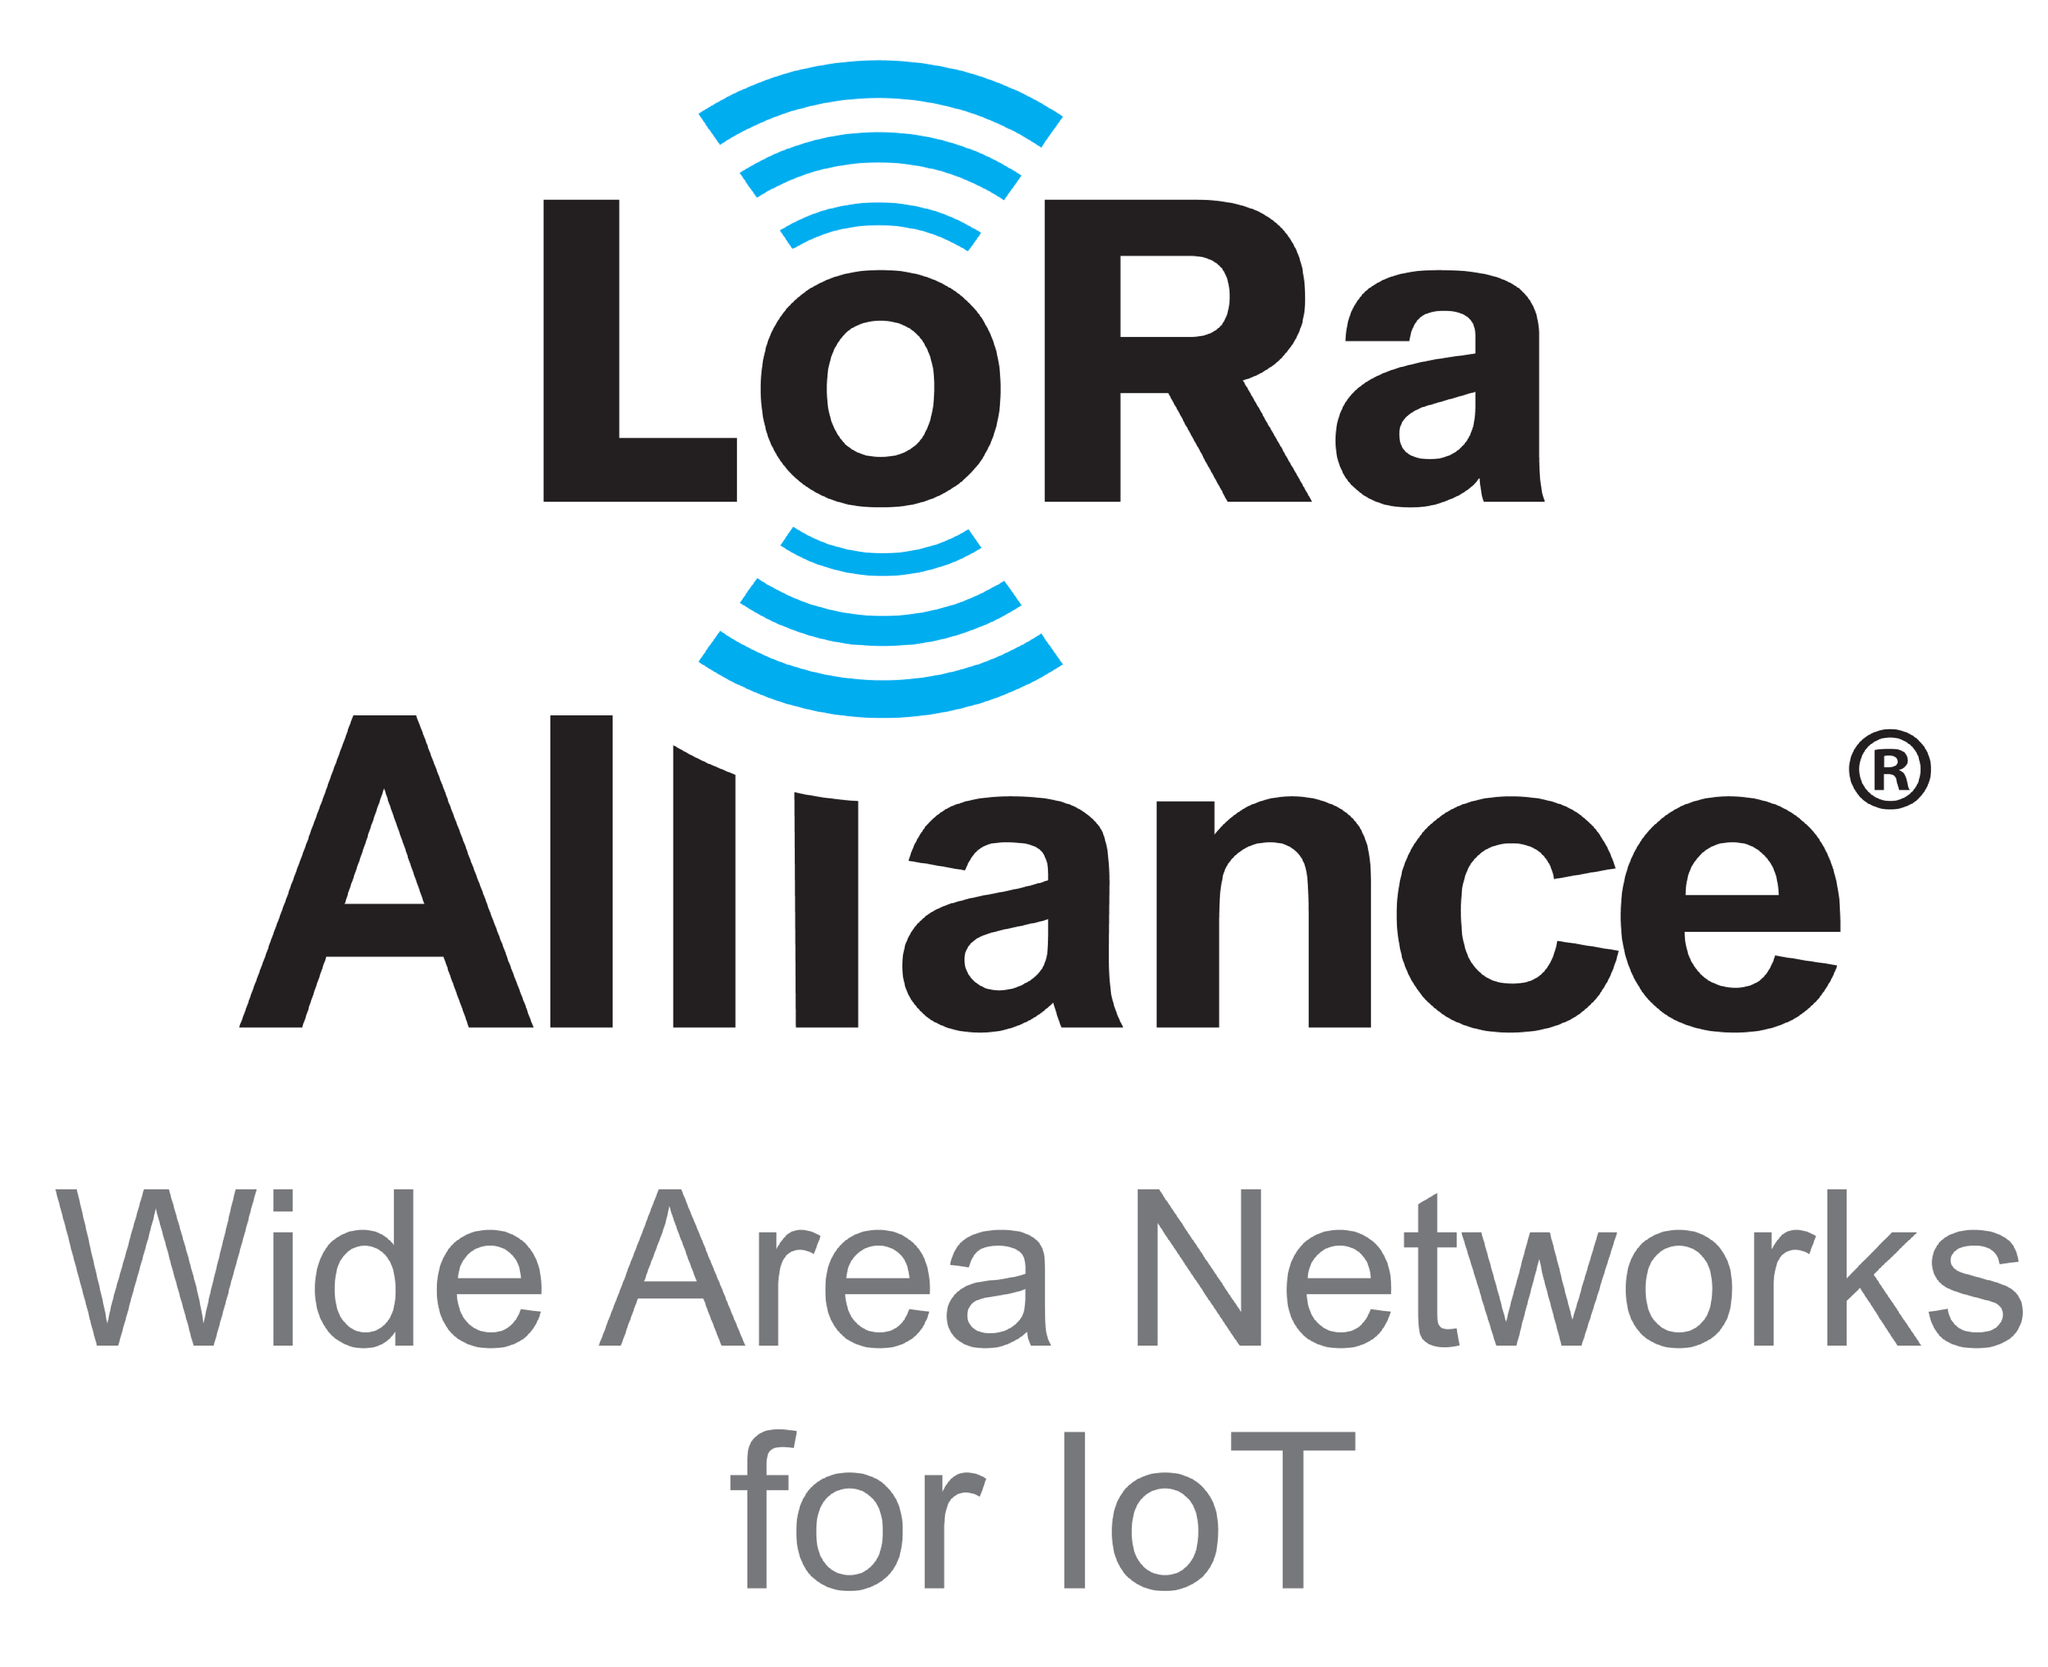 LoRa Alliance